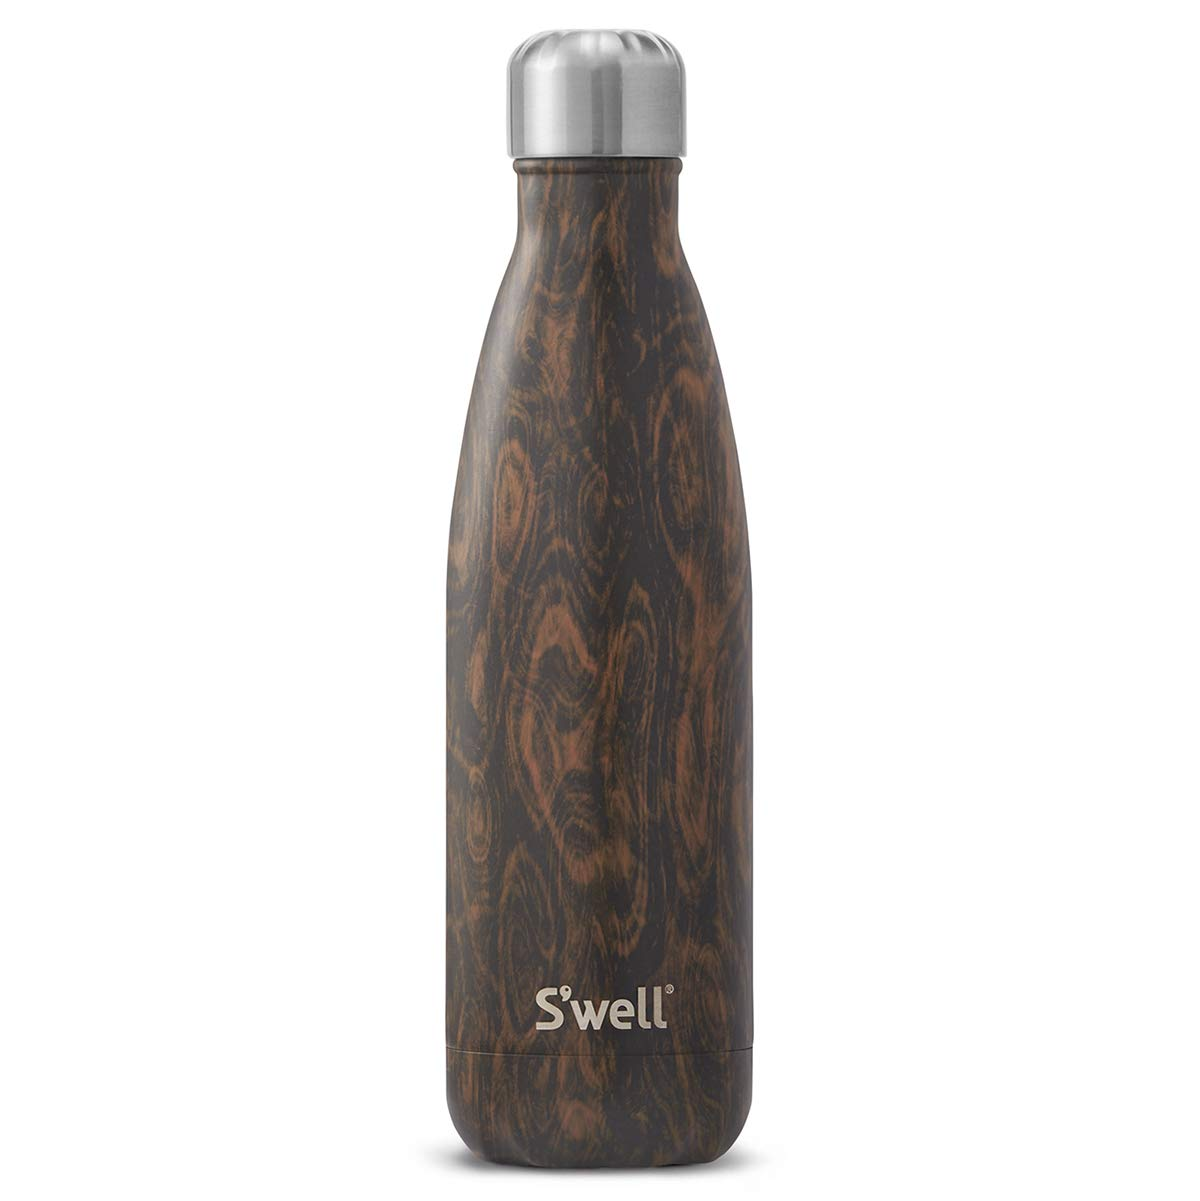 S'well Vacuum Insulated Stainless Steel Water Bottle, 17 oz, Wenge Wood by S'well (Image #1)